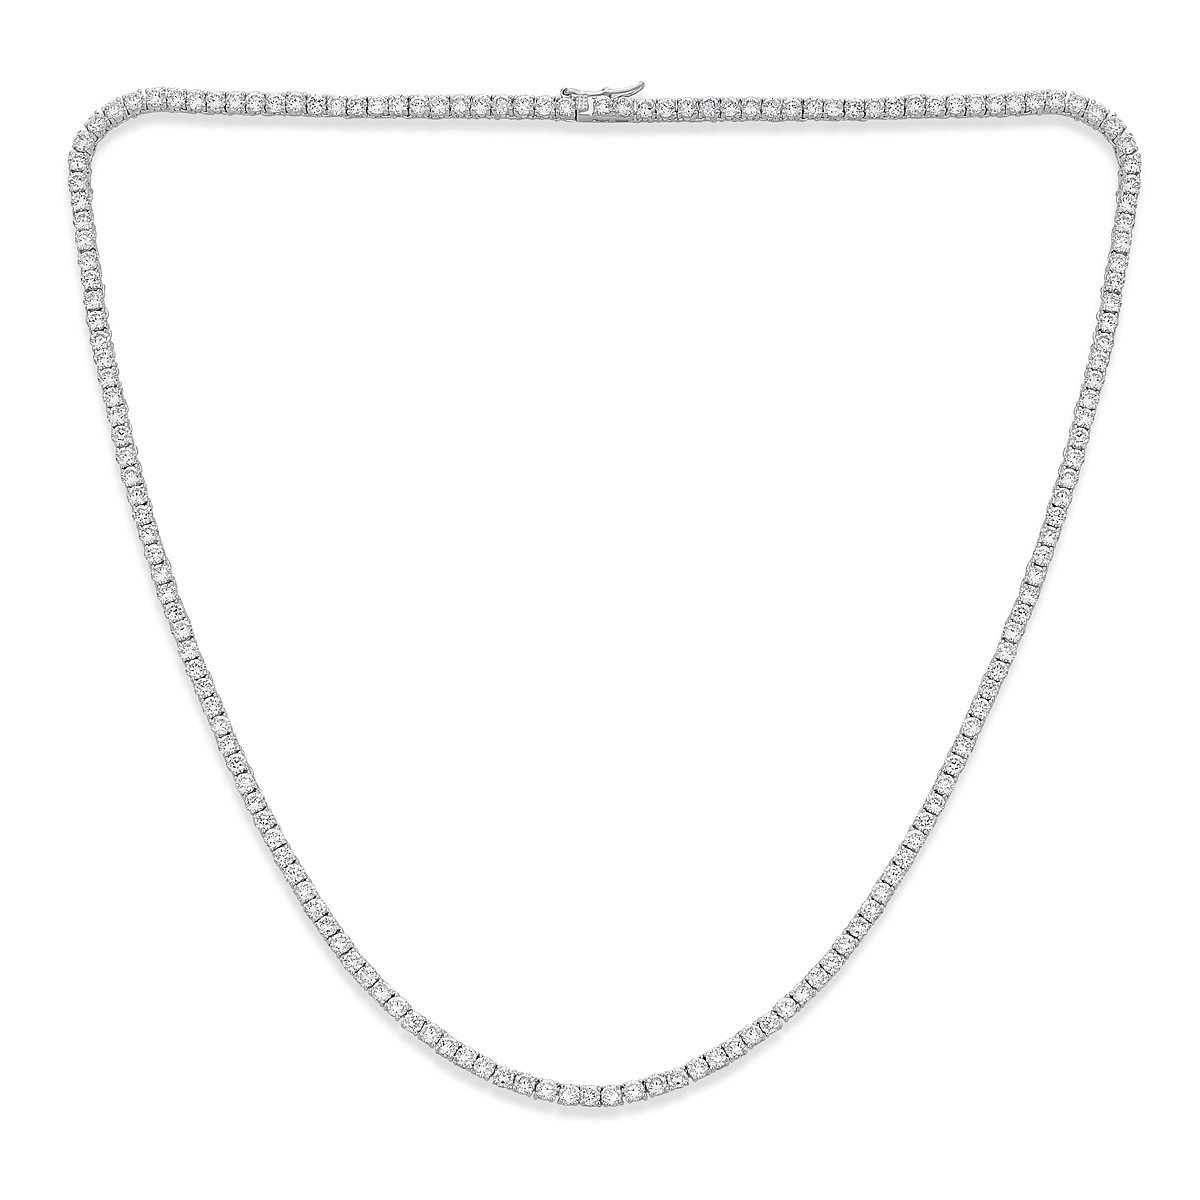 Platinum Plated Sterling Silver Cubic Zirconia Tennis Necklace